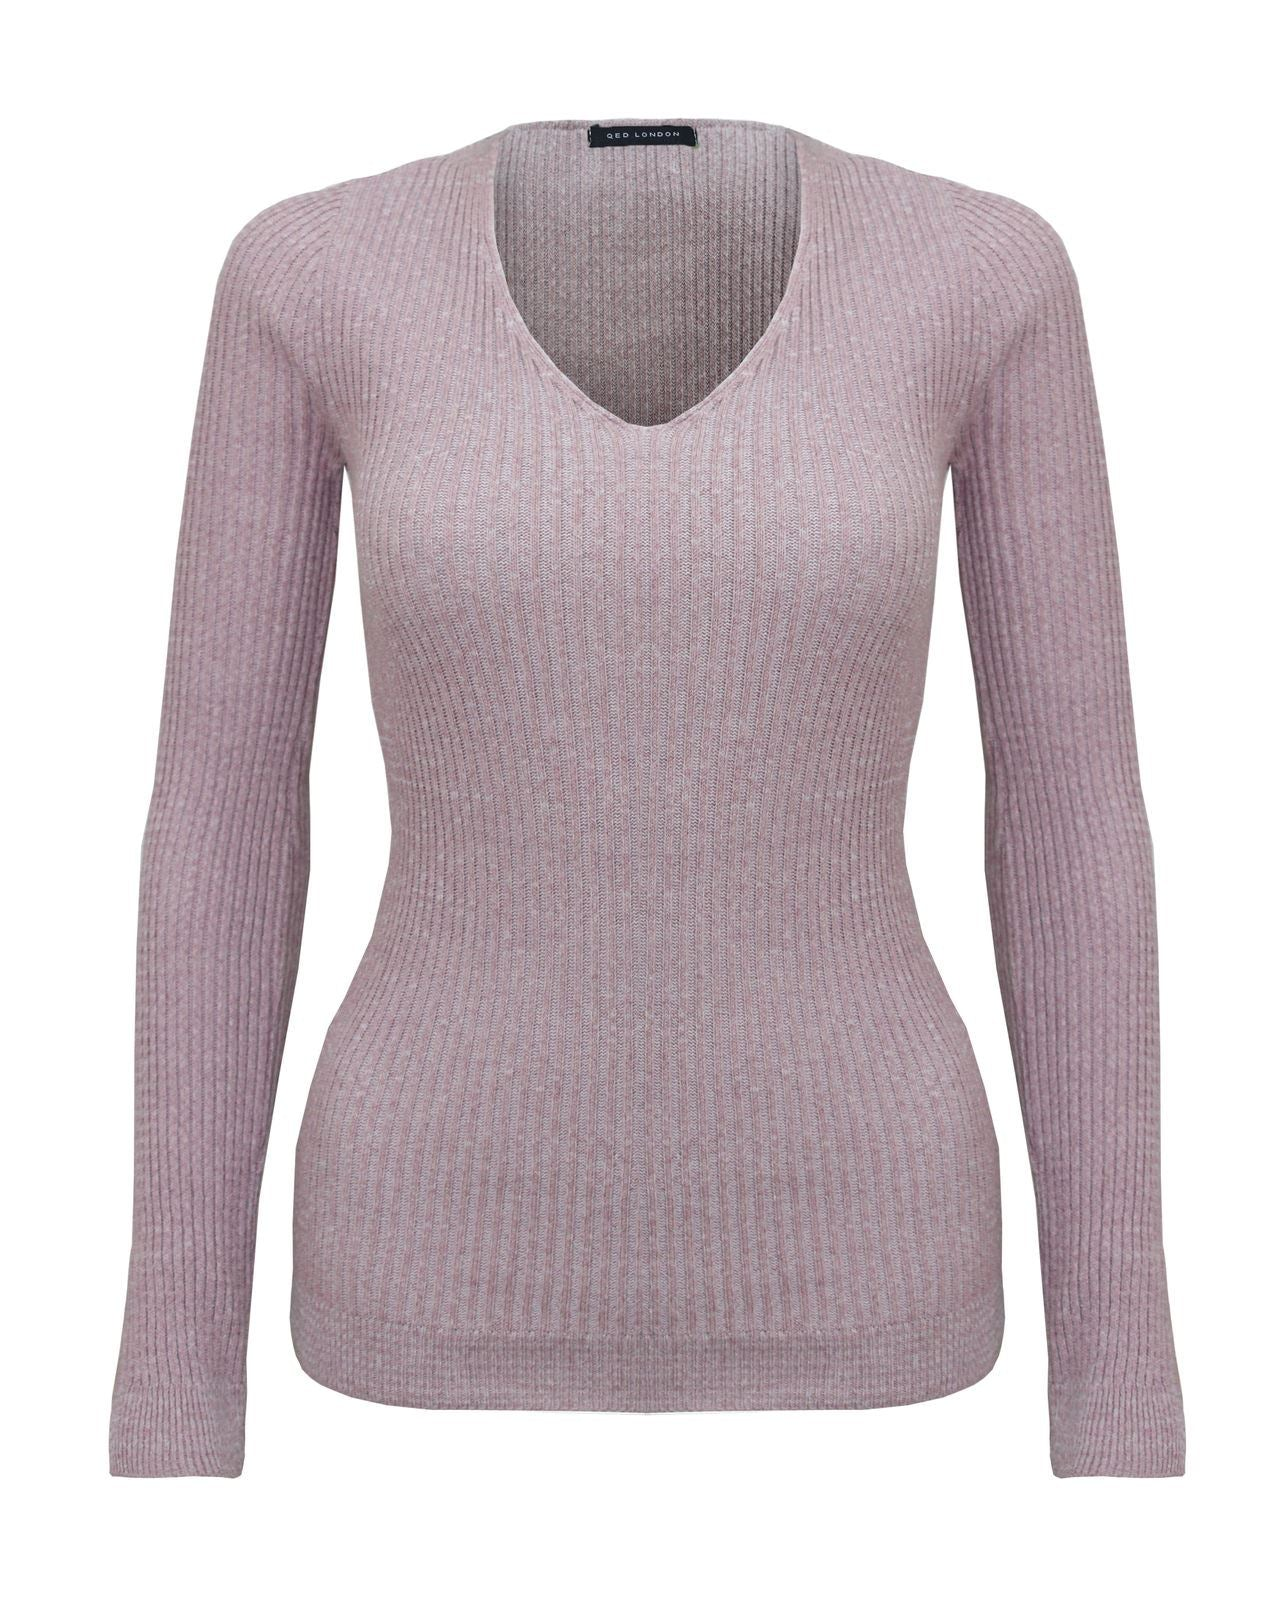 New Ladies Knitted Long Sleeve Vneck Jumper Petite Women Sweater Ribbed Top 8-14